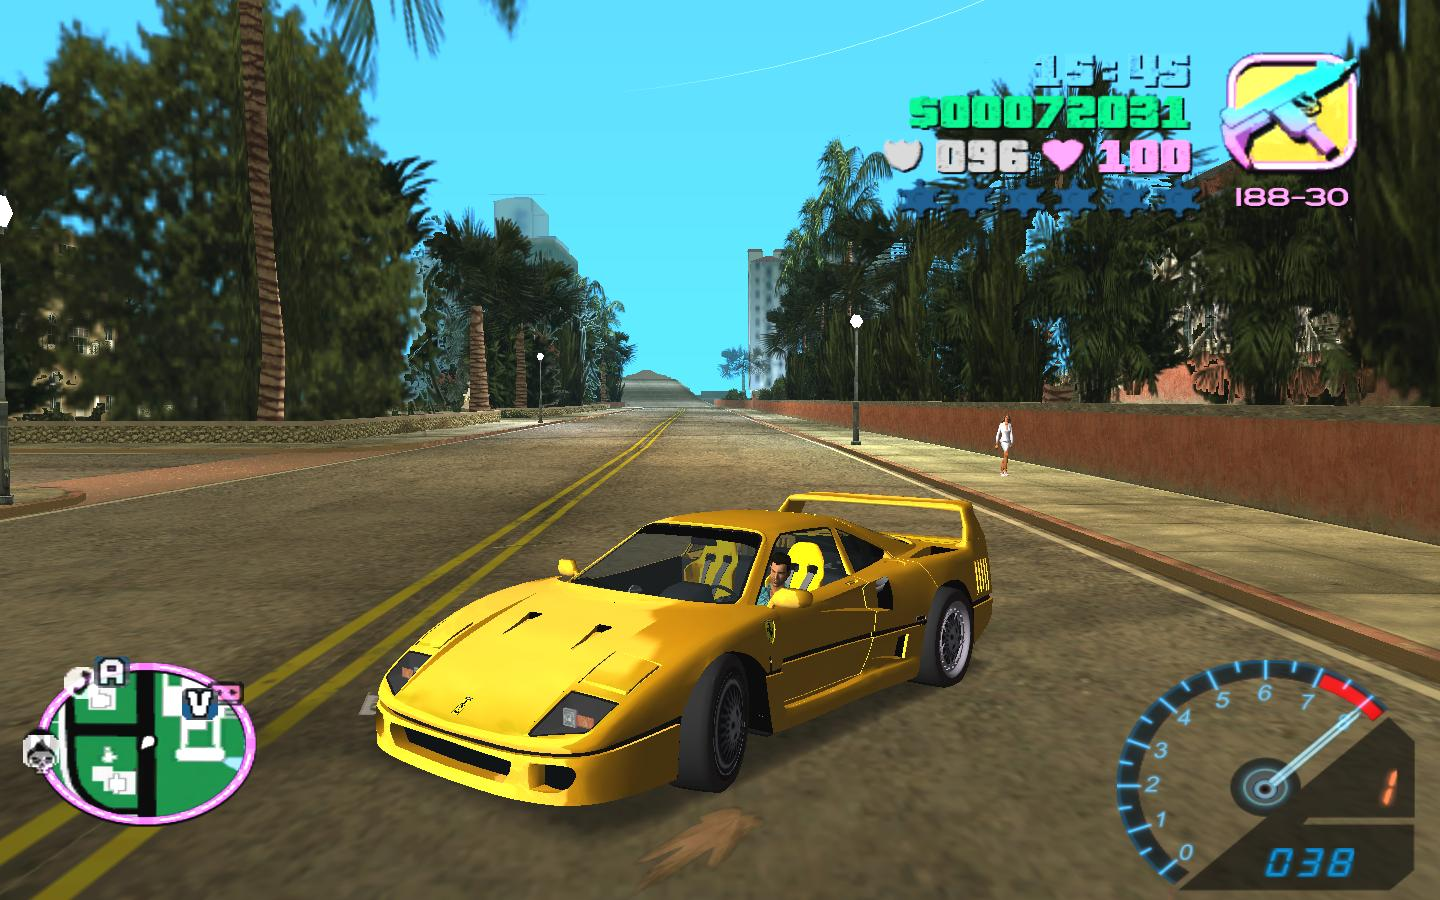 Gta vice city total conversion download